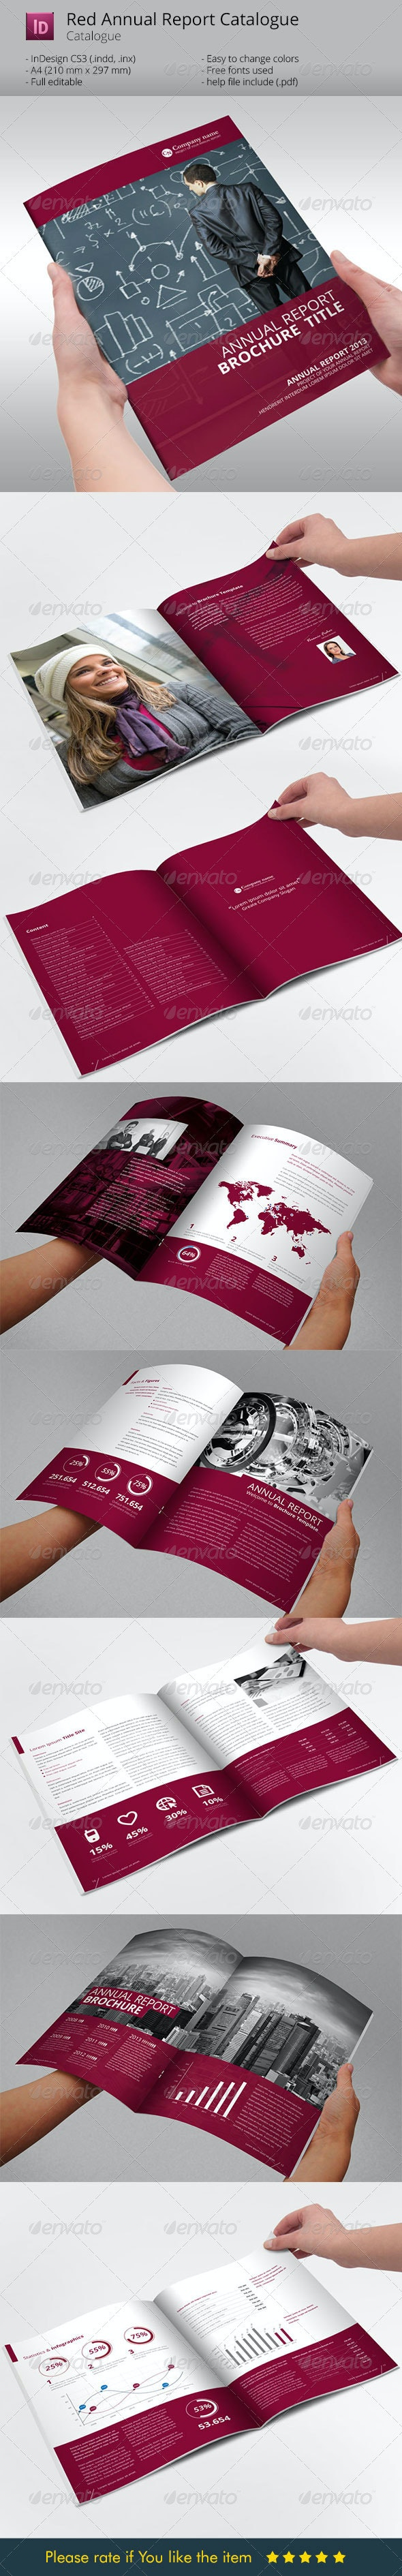 Red Annual Report Brochure Indesign Template - Corporate Brochures